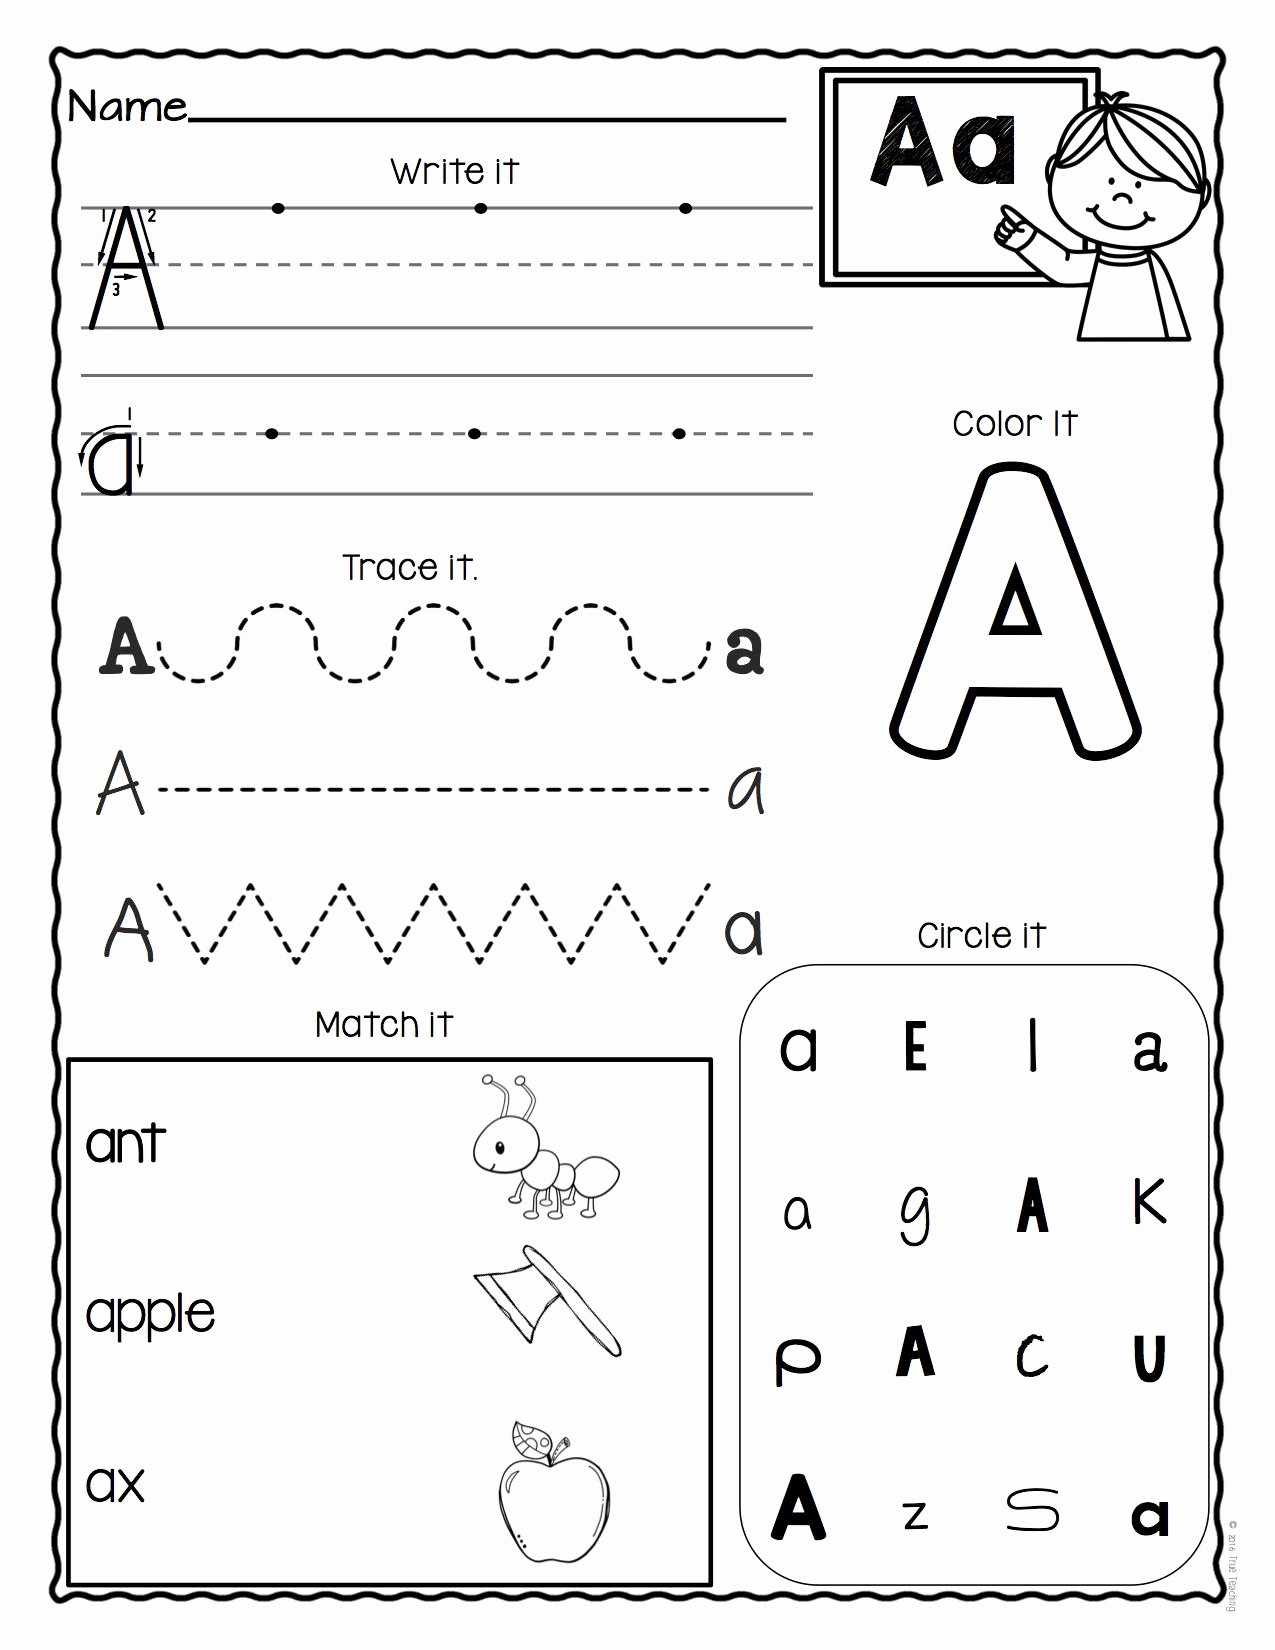 Why Worksheets for Preschoolers Lovely A Z Letter Worksheets Set 3